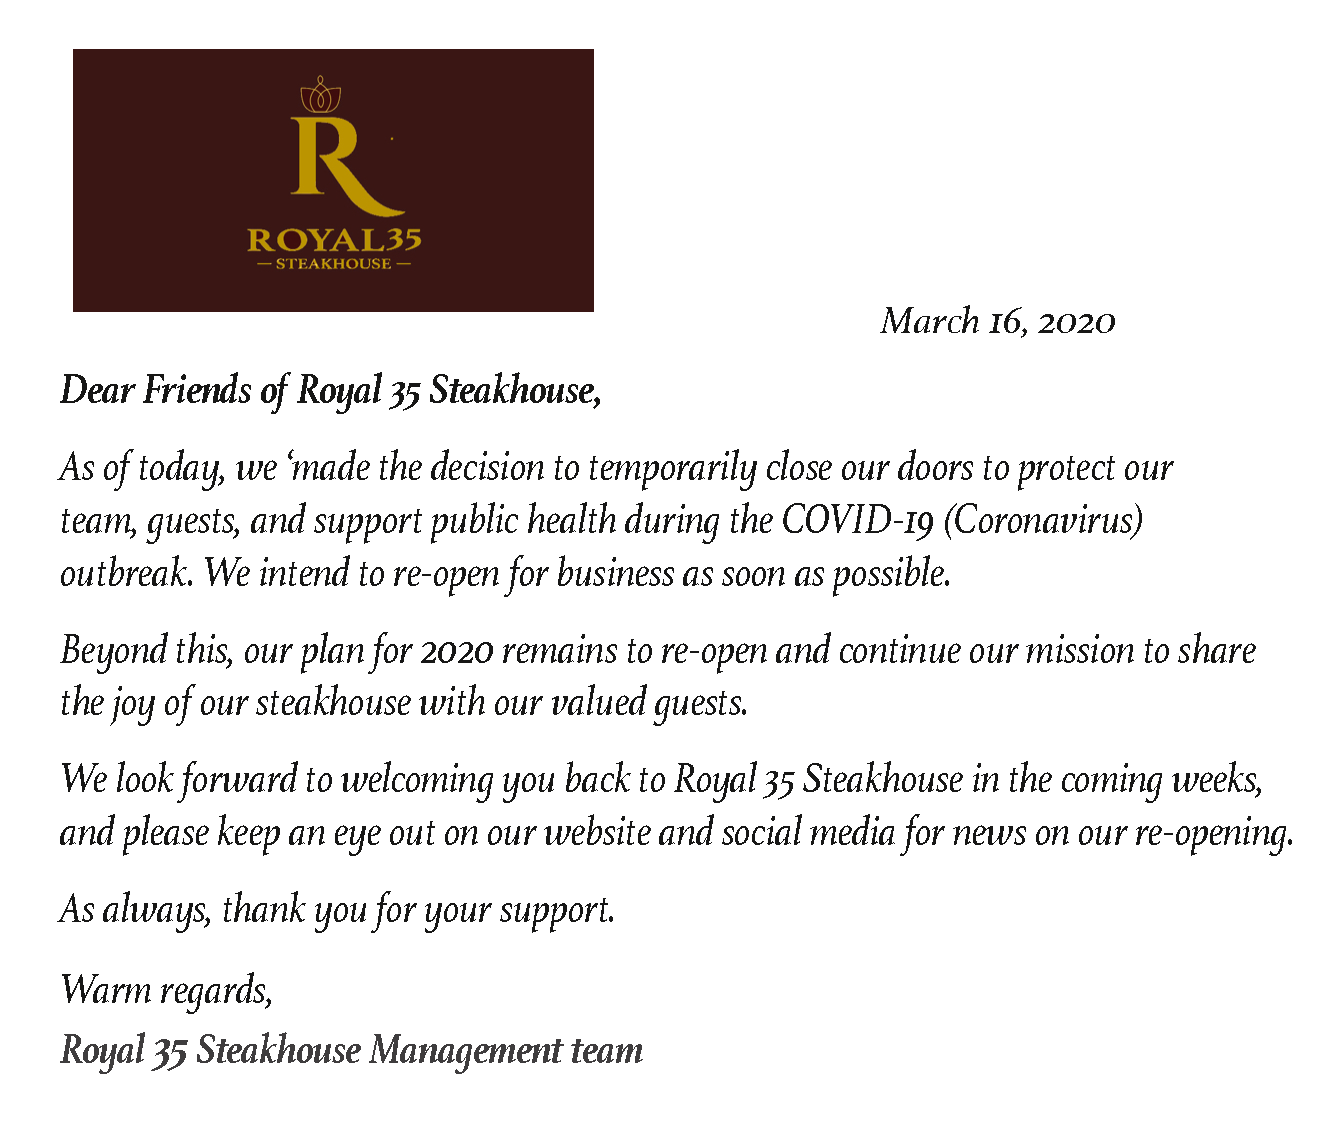 Dear Friends of Royal 35 Steakhouse, we made the decision to temporarily close our doors to protect our team, guests, and support public health during the COVID-19 (Coronavirus). We intend to re-open for business as soon as possible.